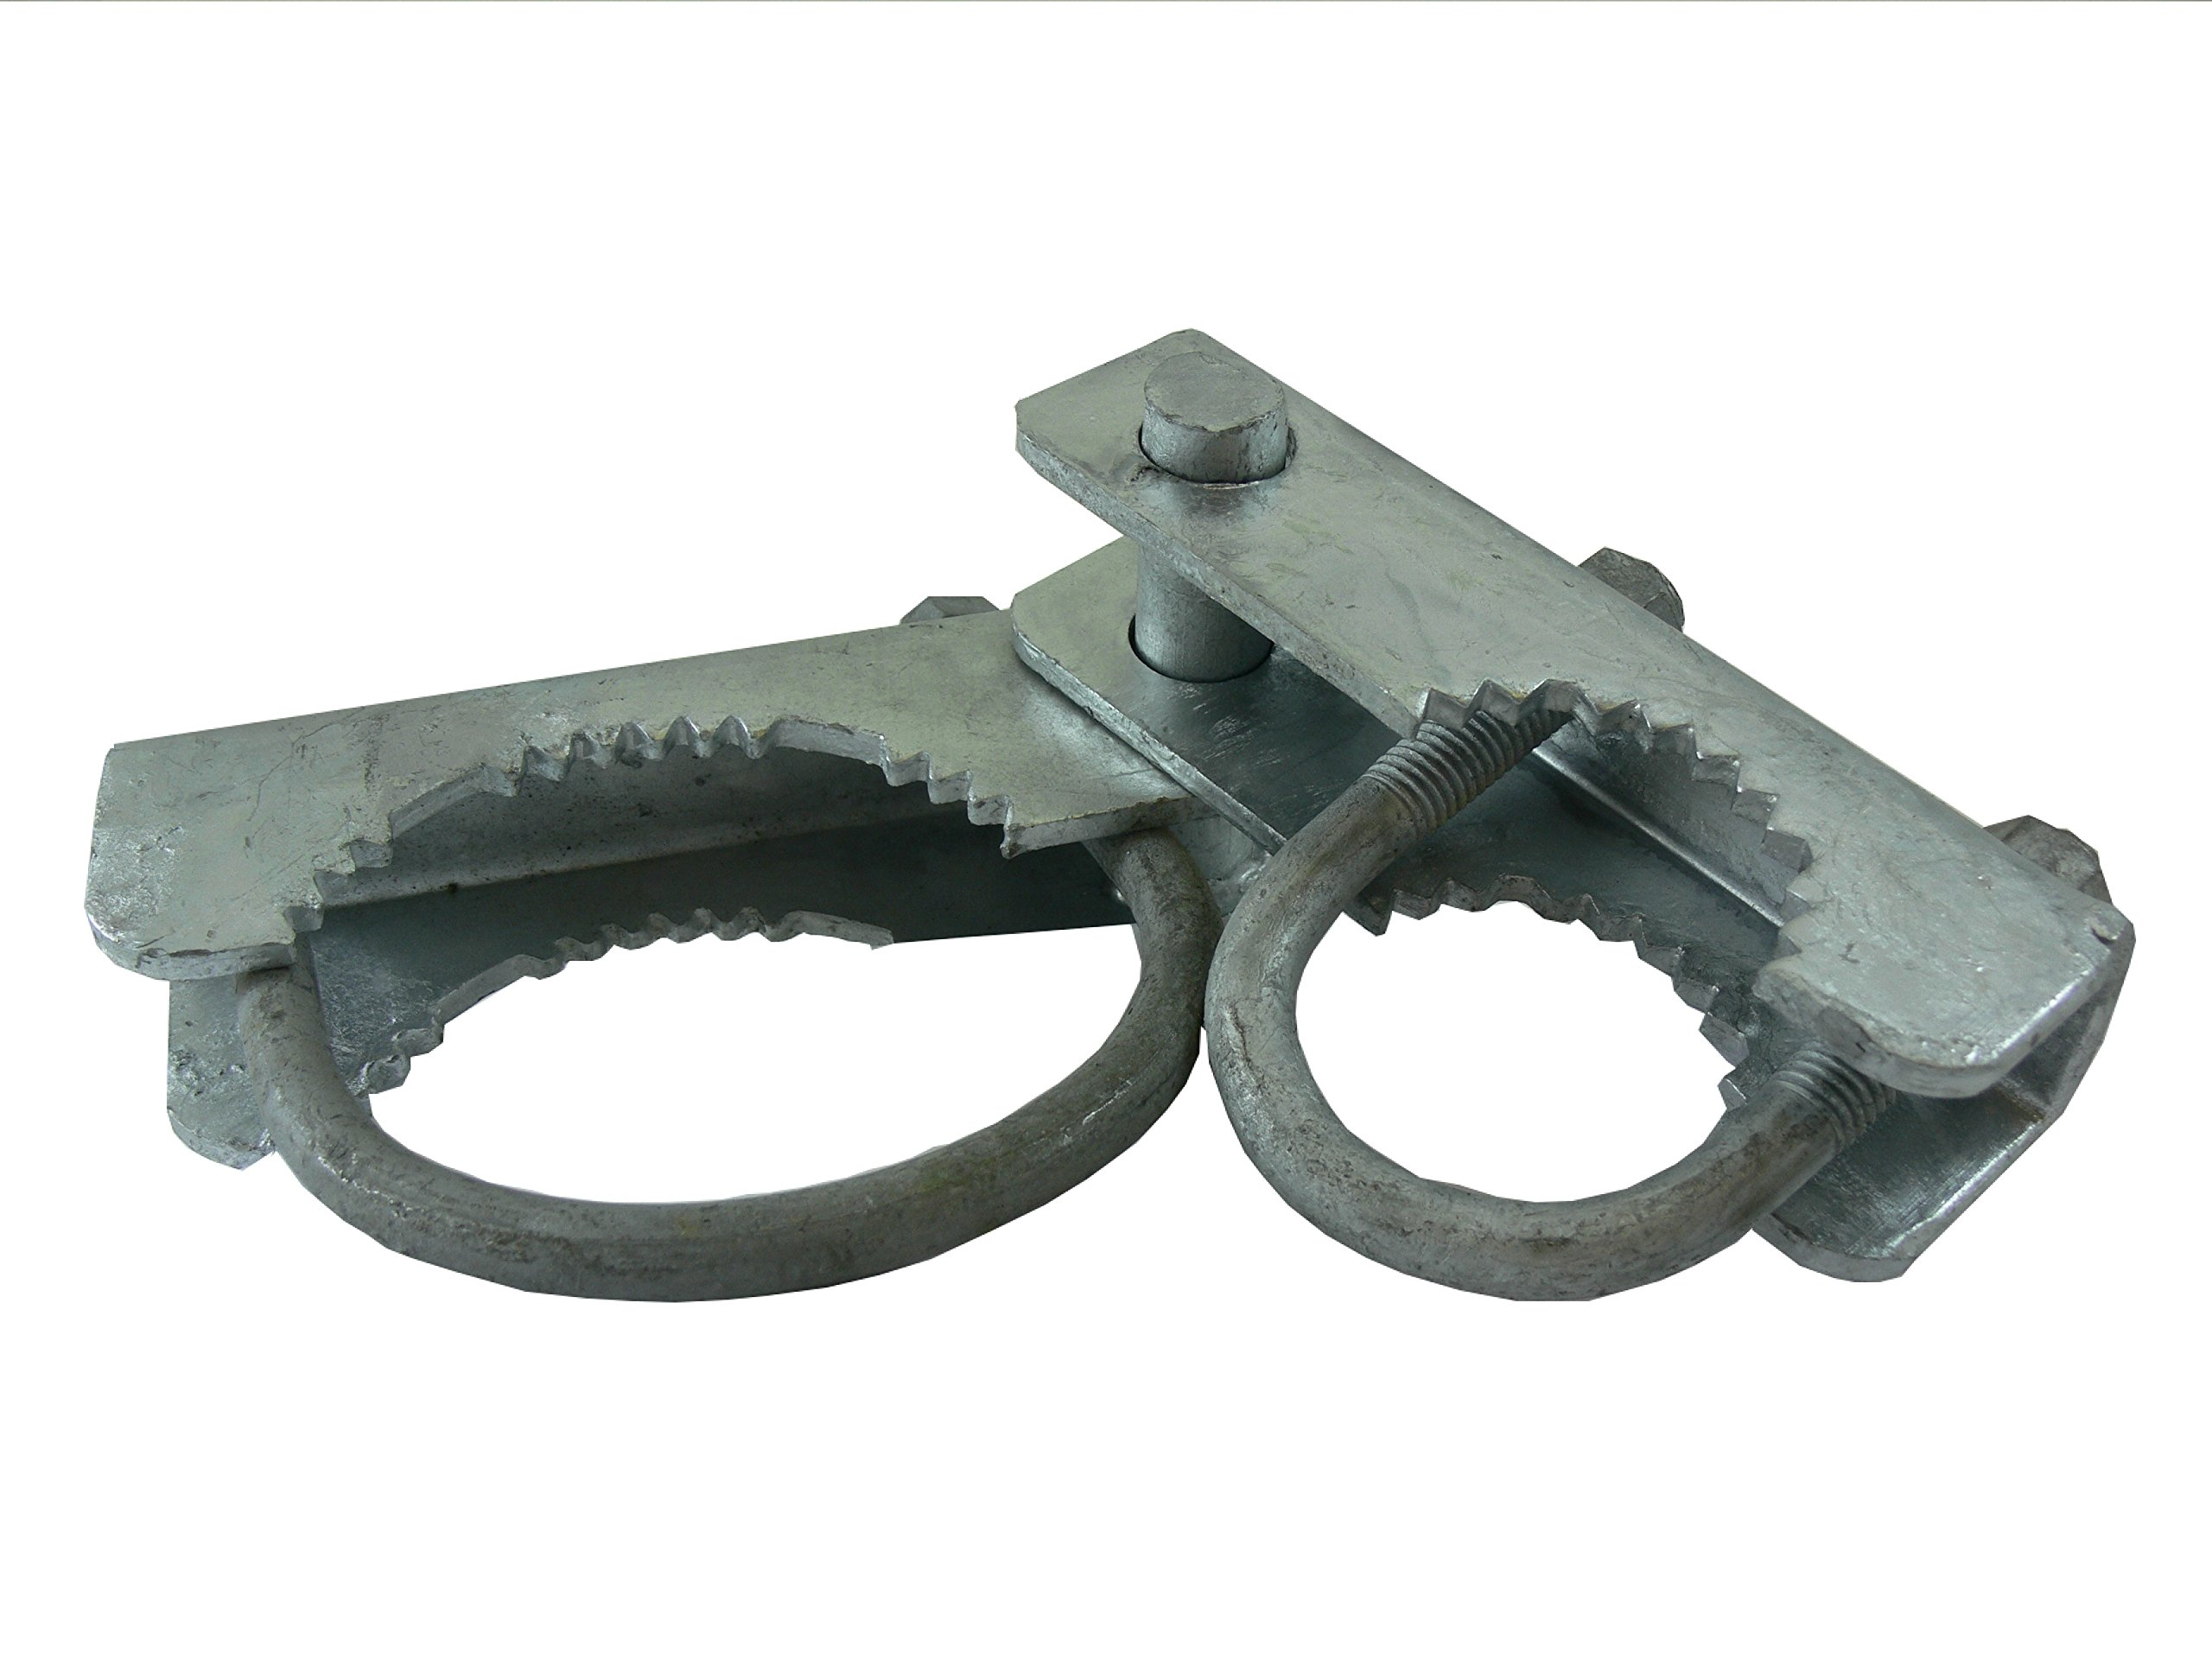 Chain Link Fence 180 Degree Commercial Duty Gate Hinge - for 6-5/8'' Outside Diameter Gate Post/Pipe & 1-5/8 Thru 1-7/8'' Gate Frames - Galvanized Chain Link Post Gate Hinge - Hinge''U'' Bolts Included